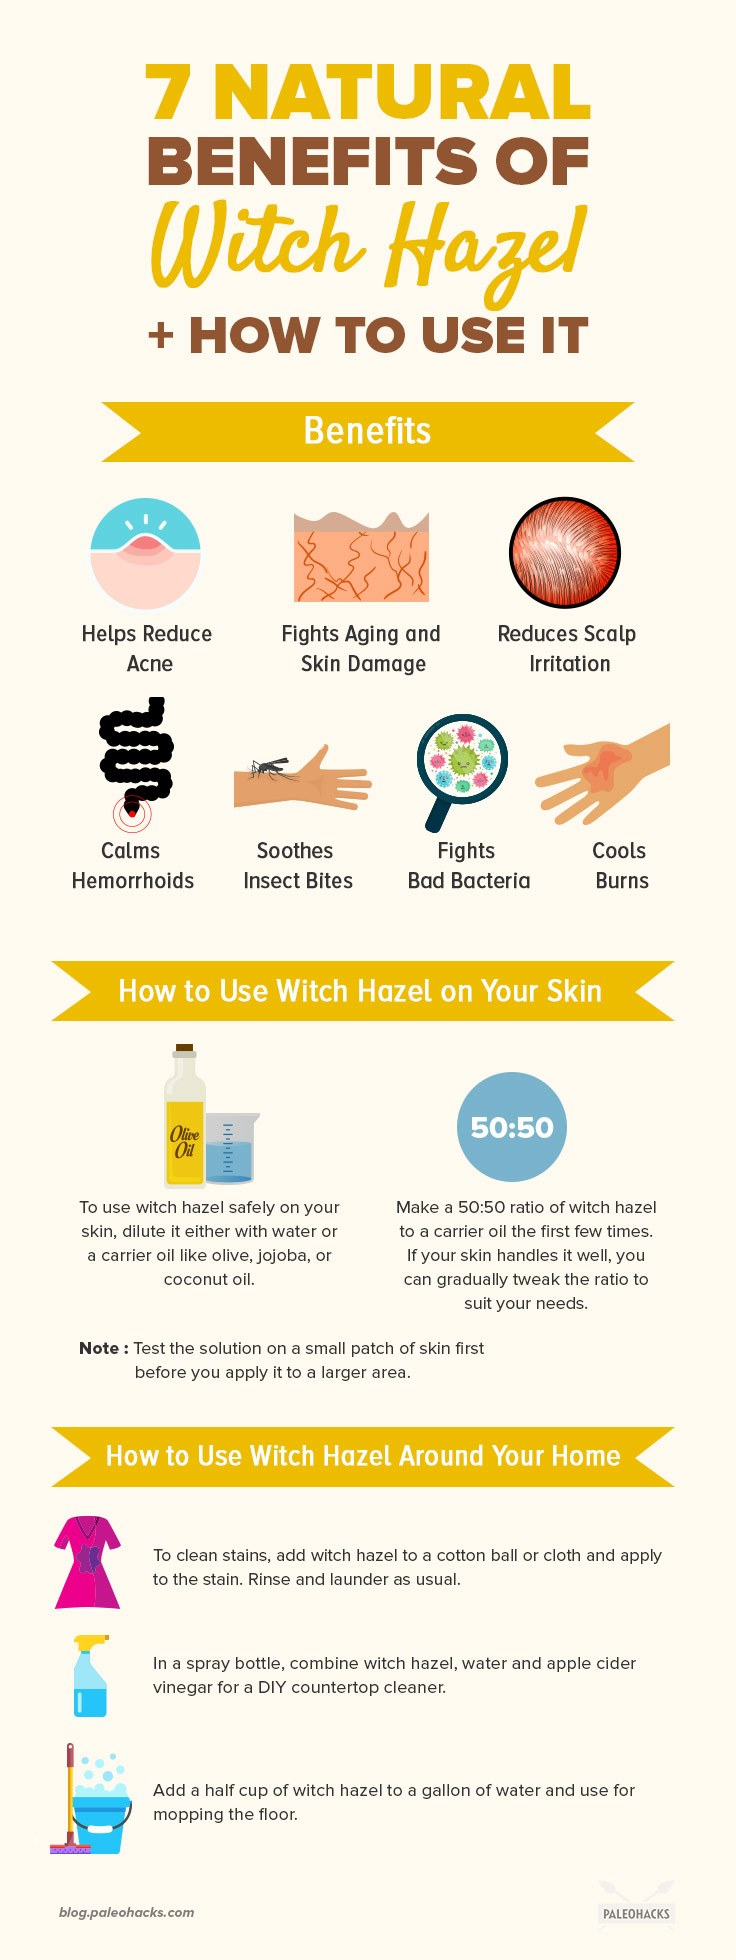 7-Natural-Benefits-of-Witch-Hazel-How-To-Use-It-infog.jpg